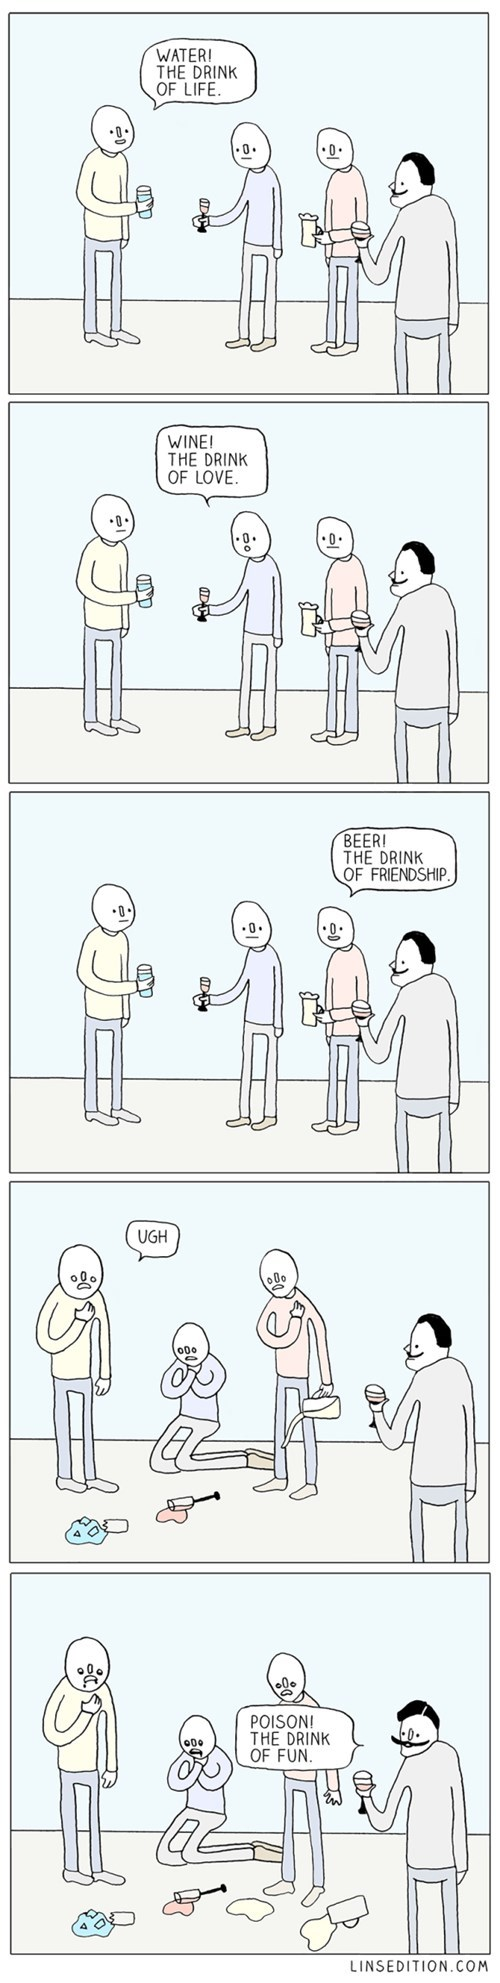 beer drinking water poison wine web comics - 8389368576